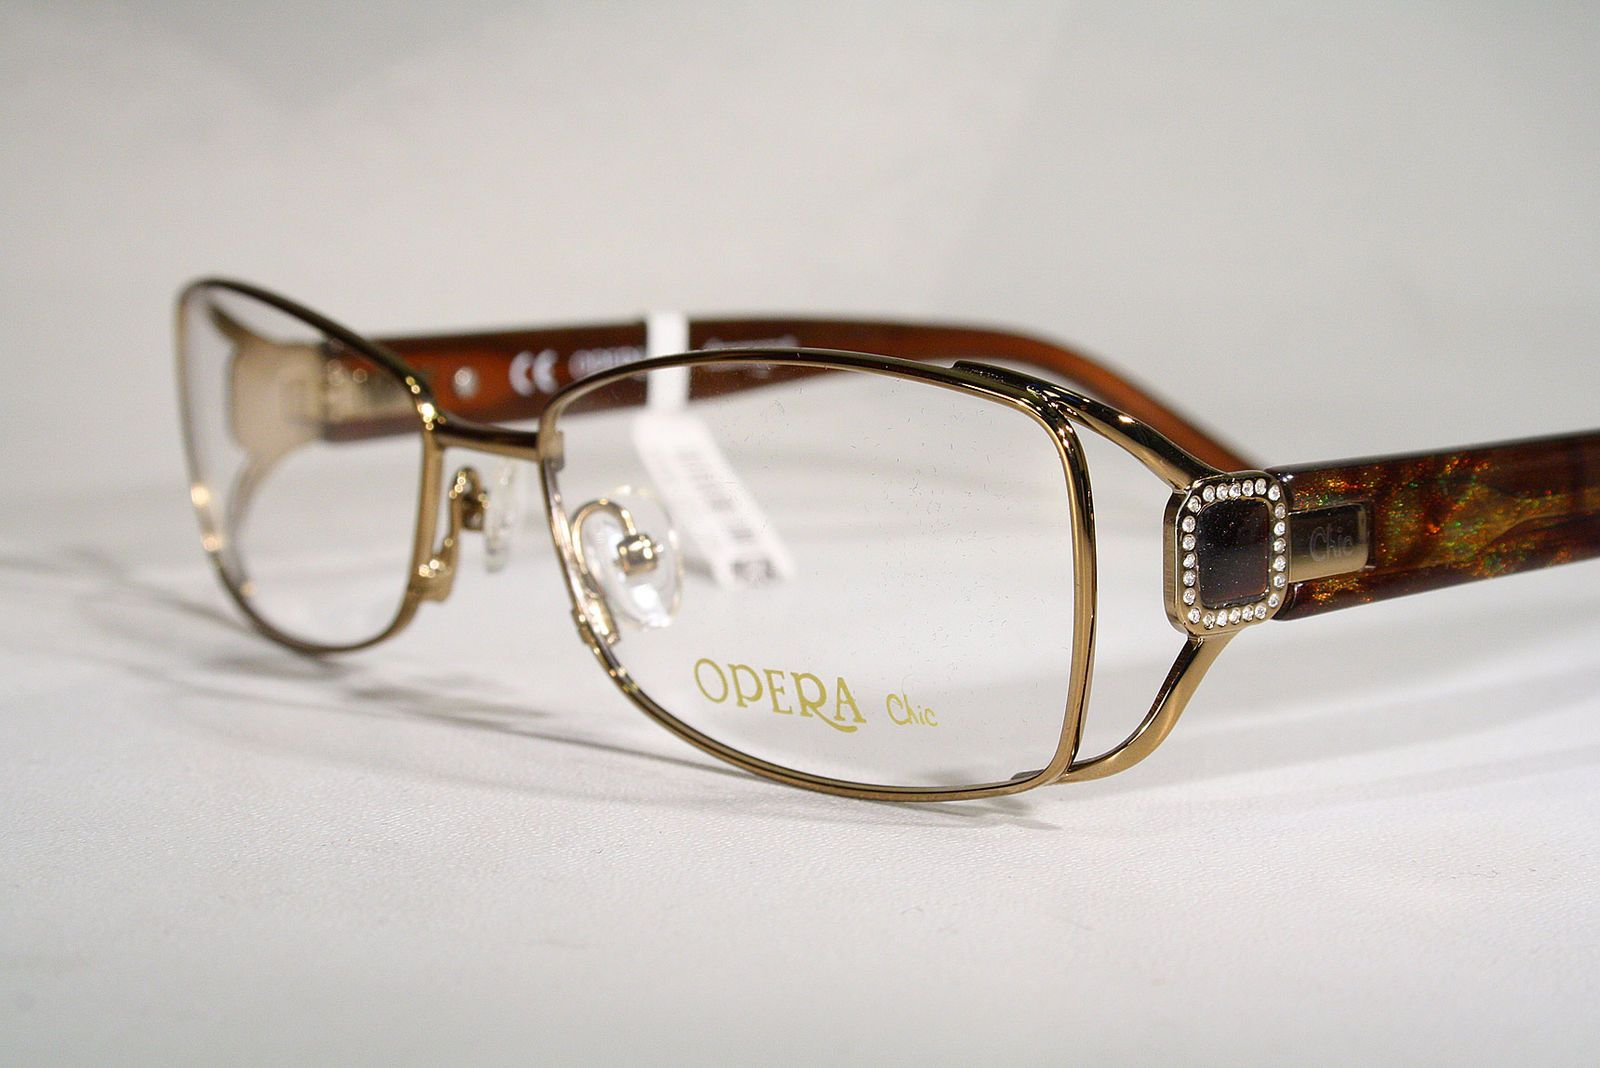 efdd76211a7 OPERA CHIC Women s Gold   Diamantes in Caramel Brown Eyeglass Frames Glasses    eBay (RipVanW)